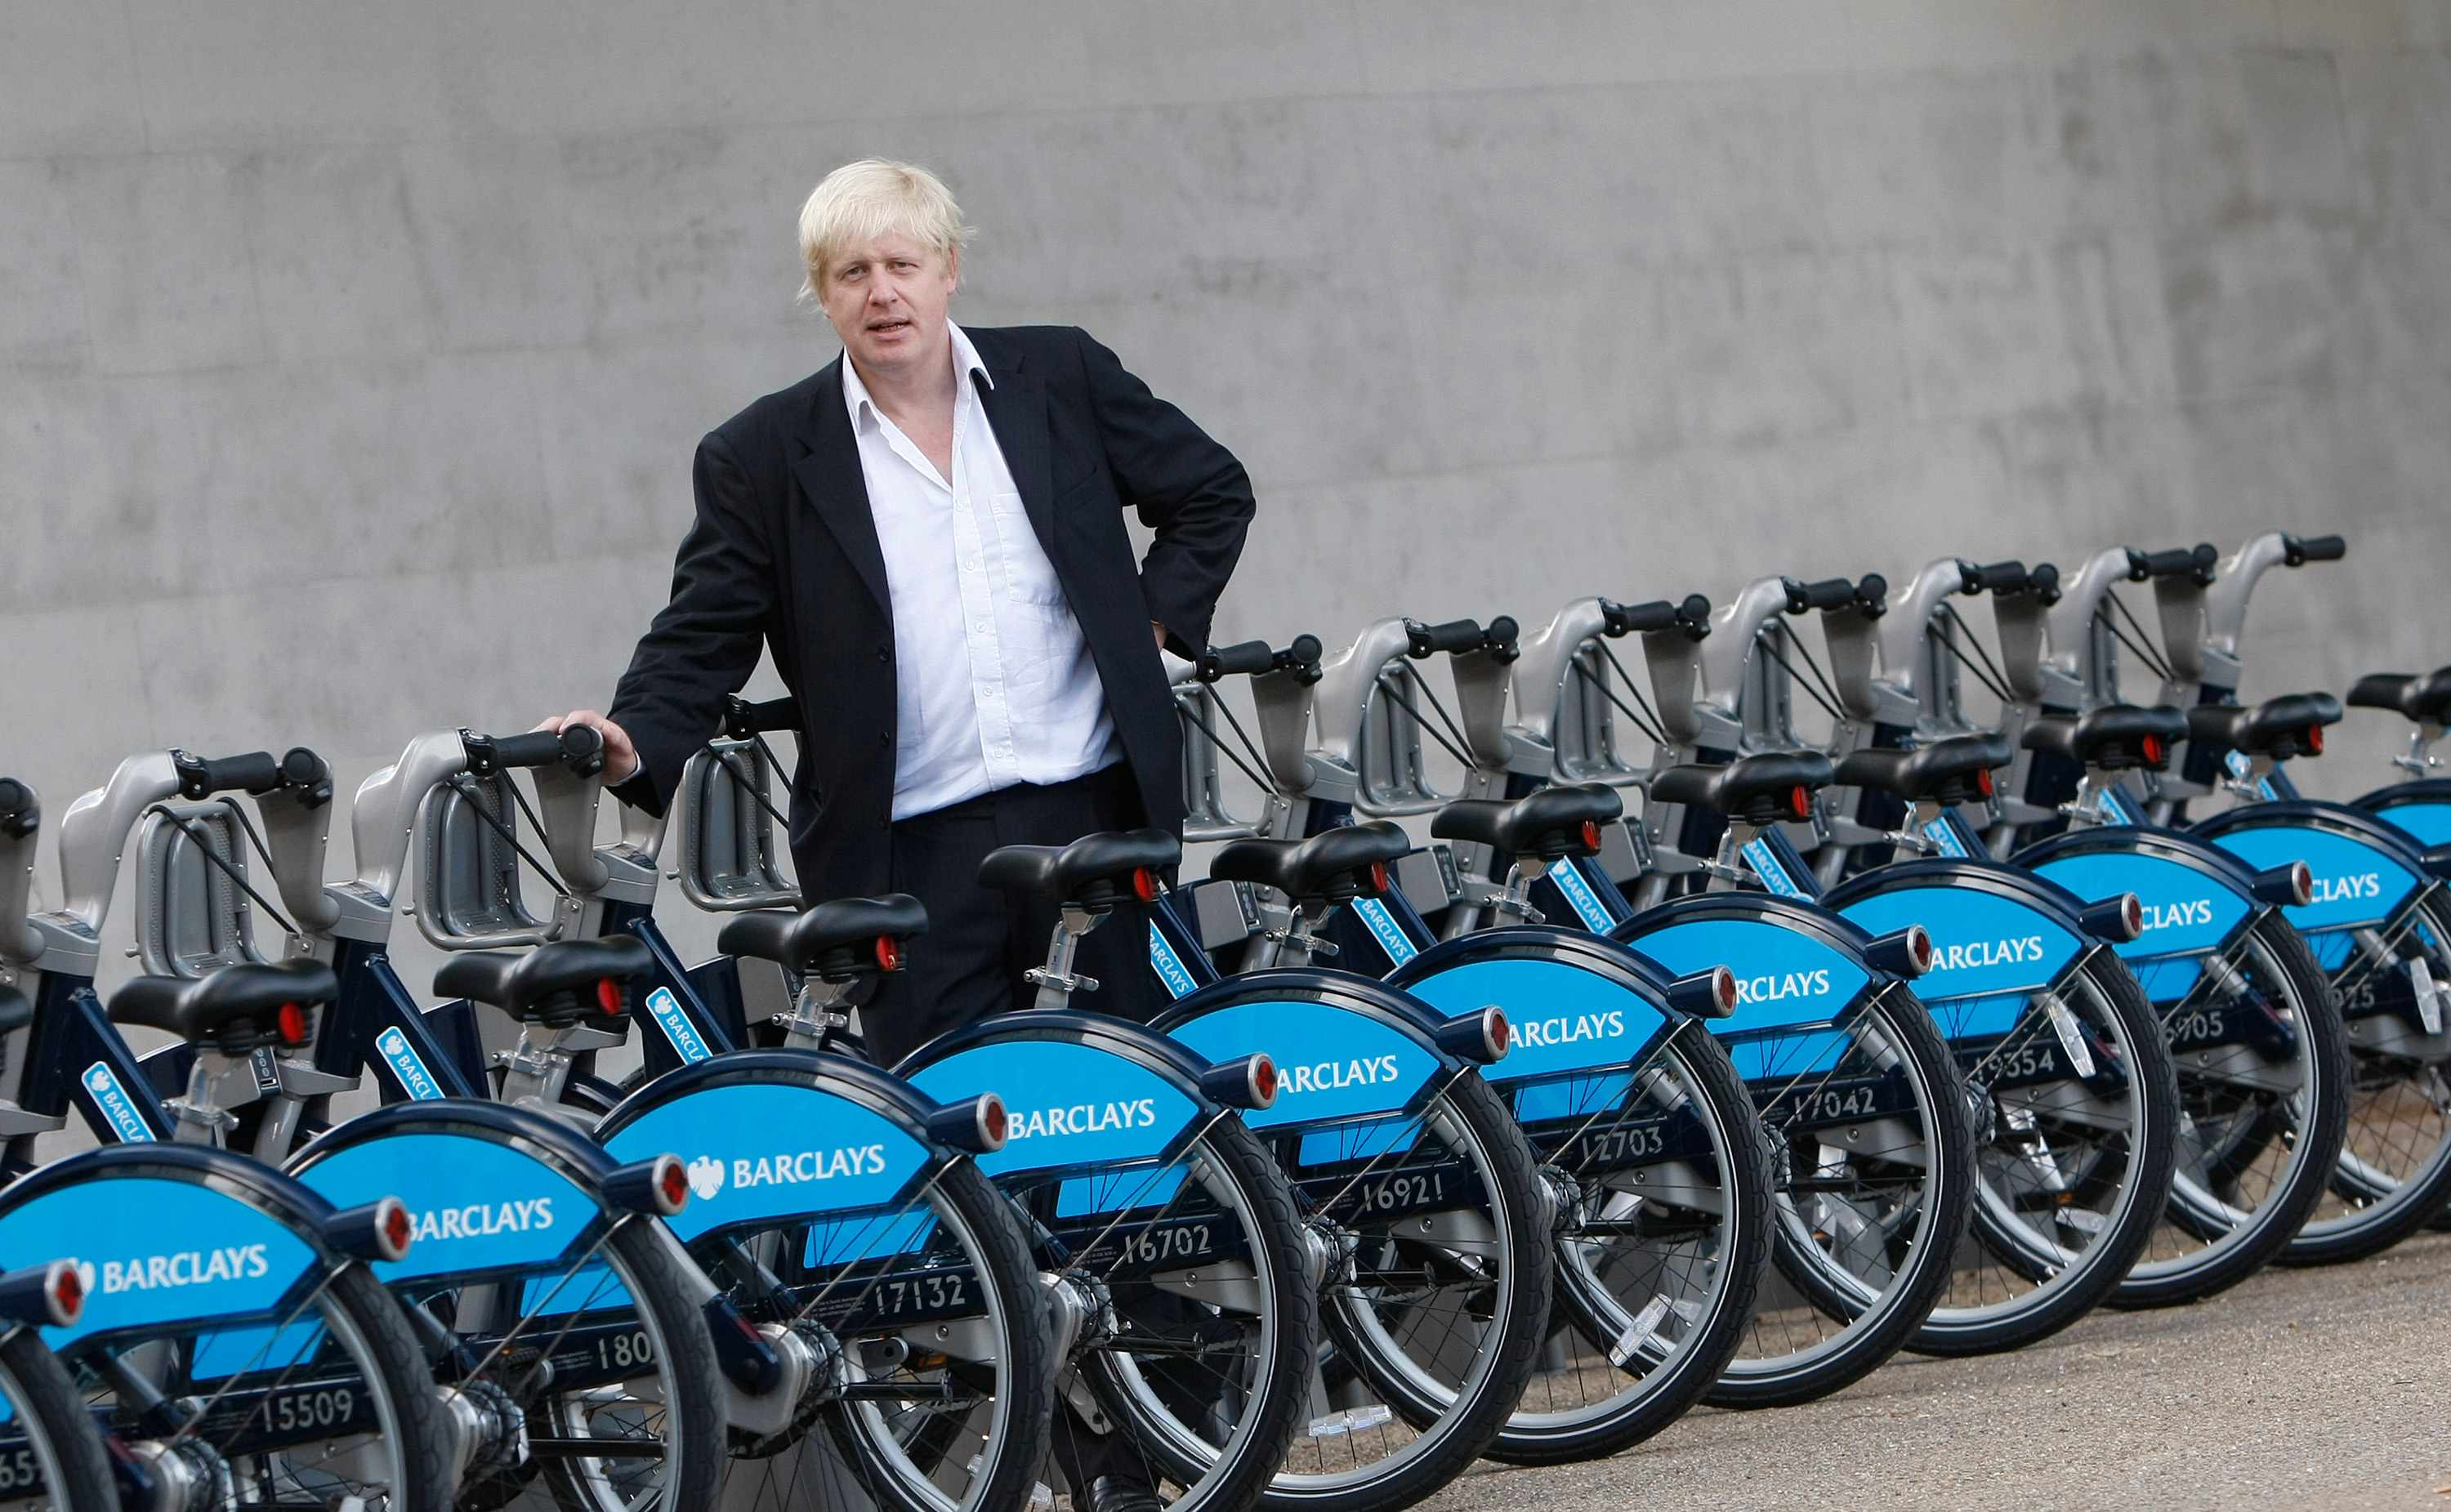 Mayor of London Boris Johnson with bikes from the Barclays Cycle Hire scheme